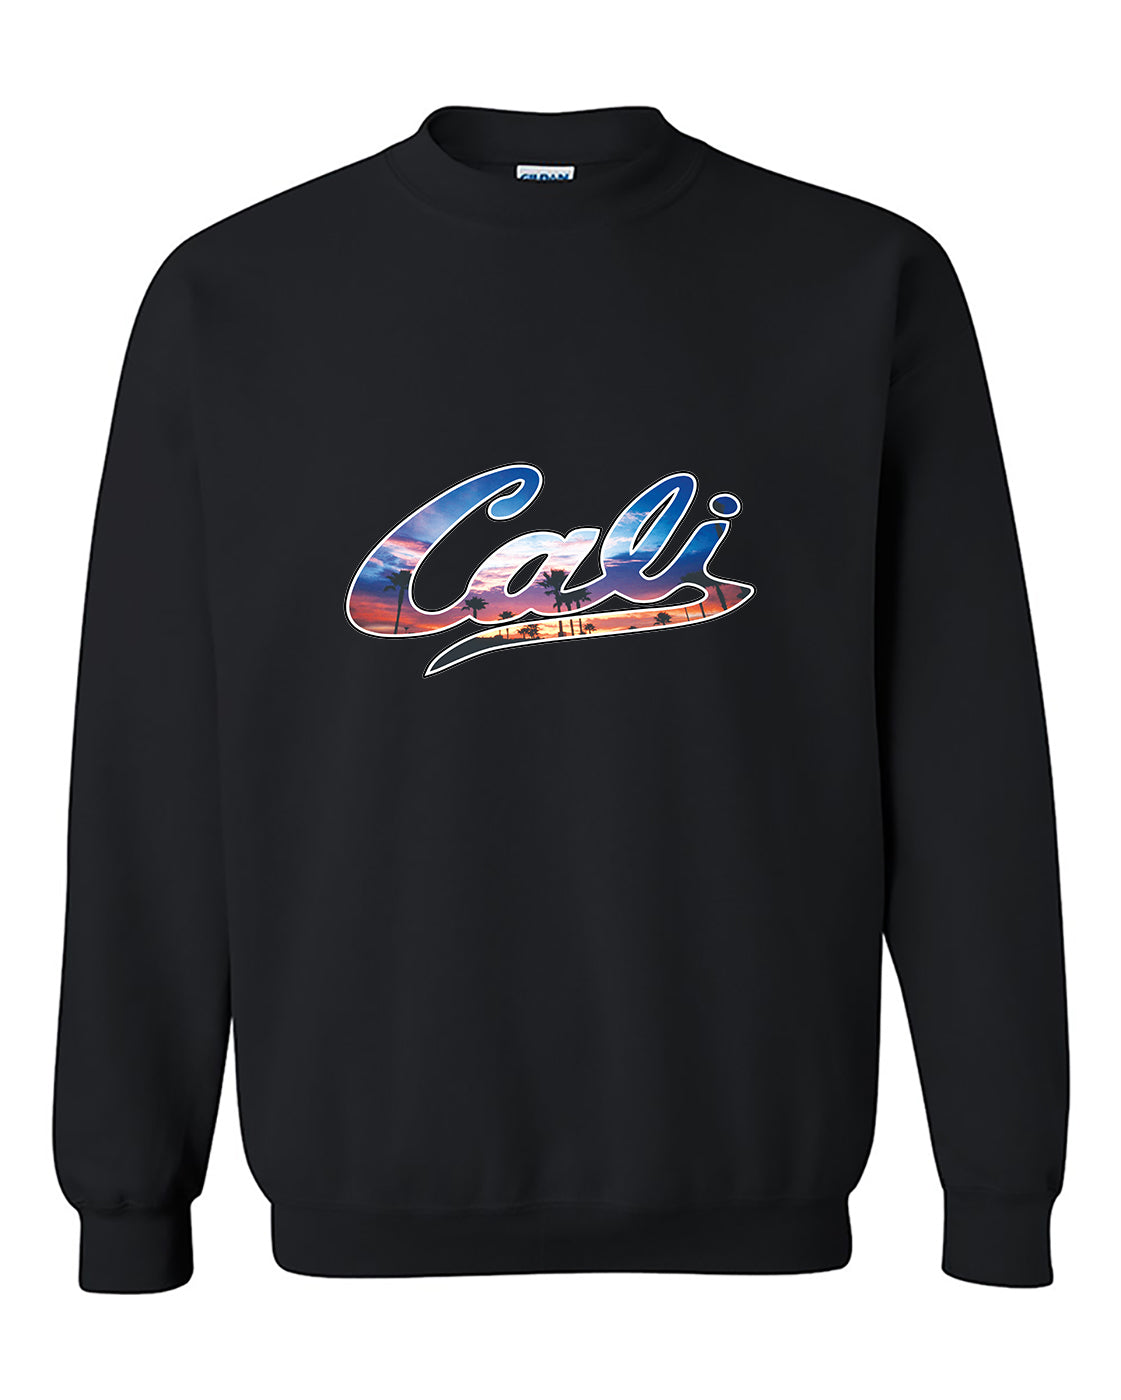 Cali Palm Trees Sunset Pattern Cali Life West Coast California Crewneck Sweater